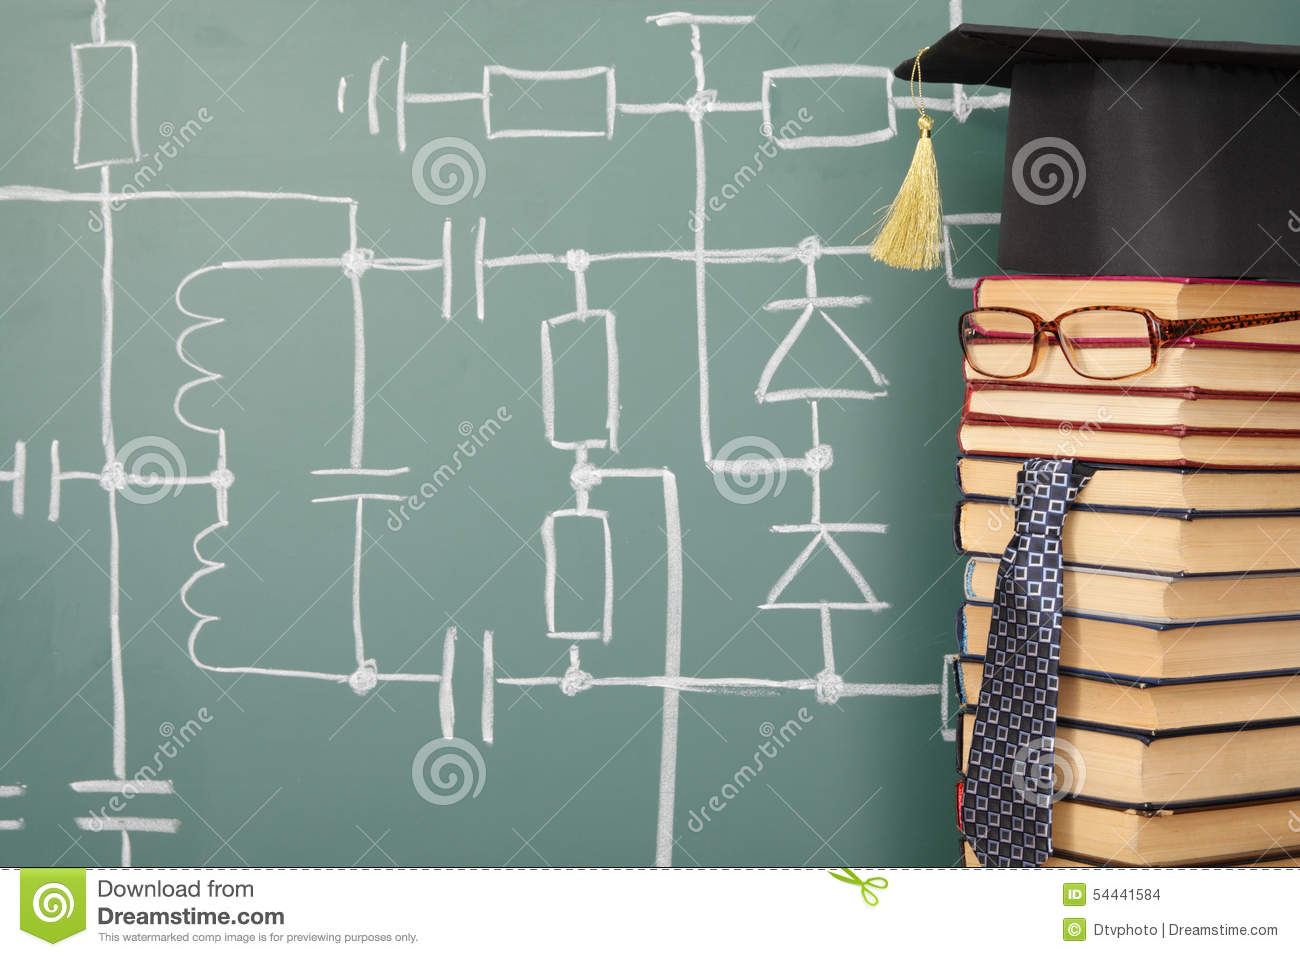 Electronics Lecturer Stock Photo Image Of Inductance 54441584 Schematic Diagram Funny